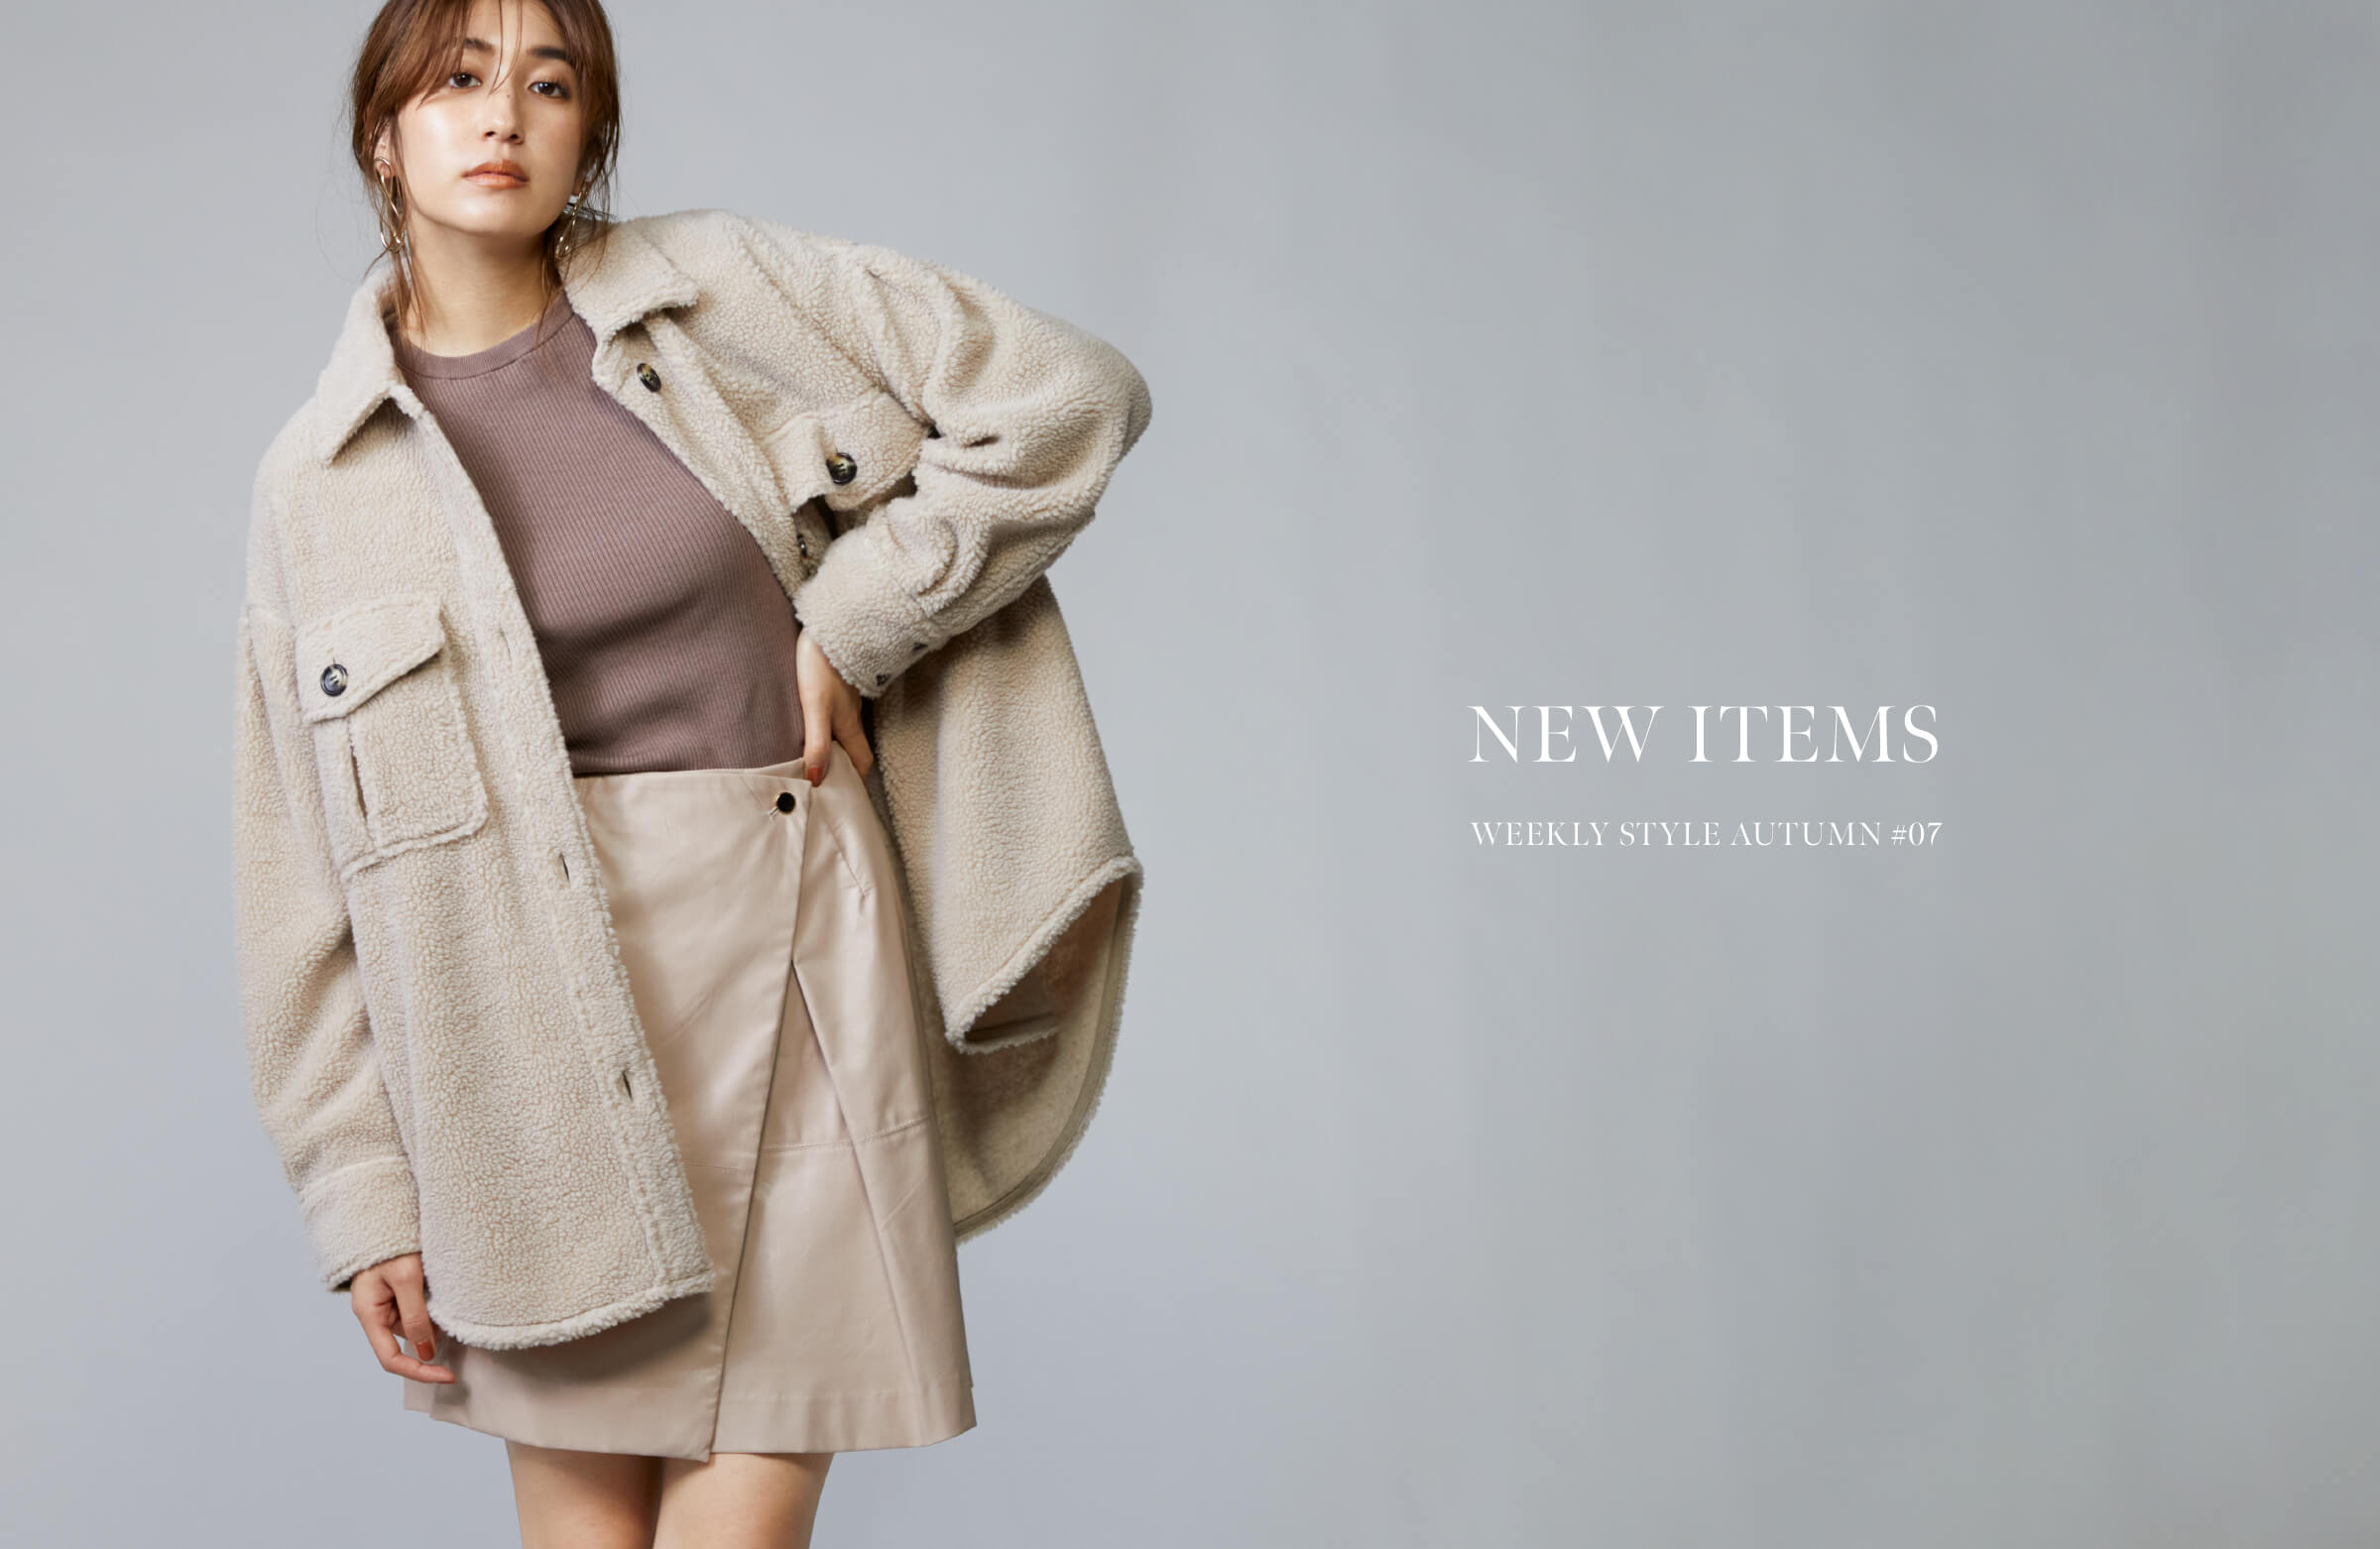 NEW ITEMS WEEKLY STYLE AUTUMN #07